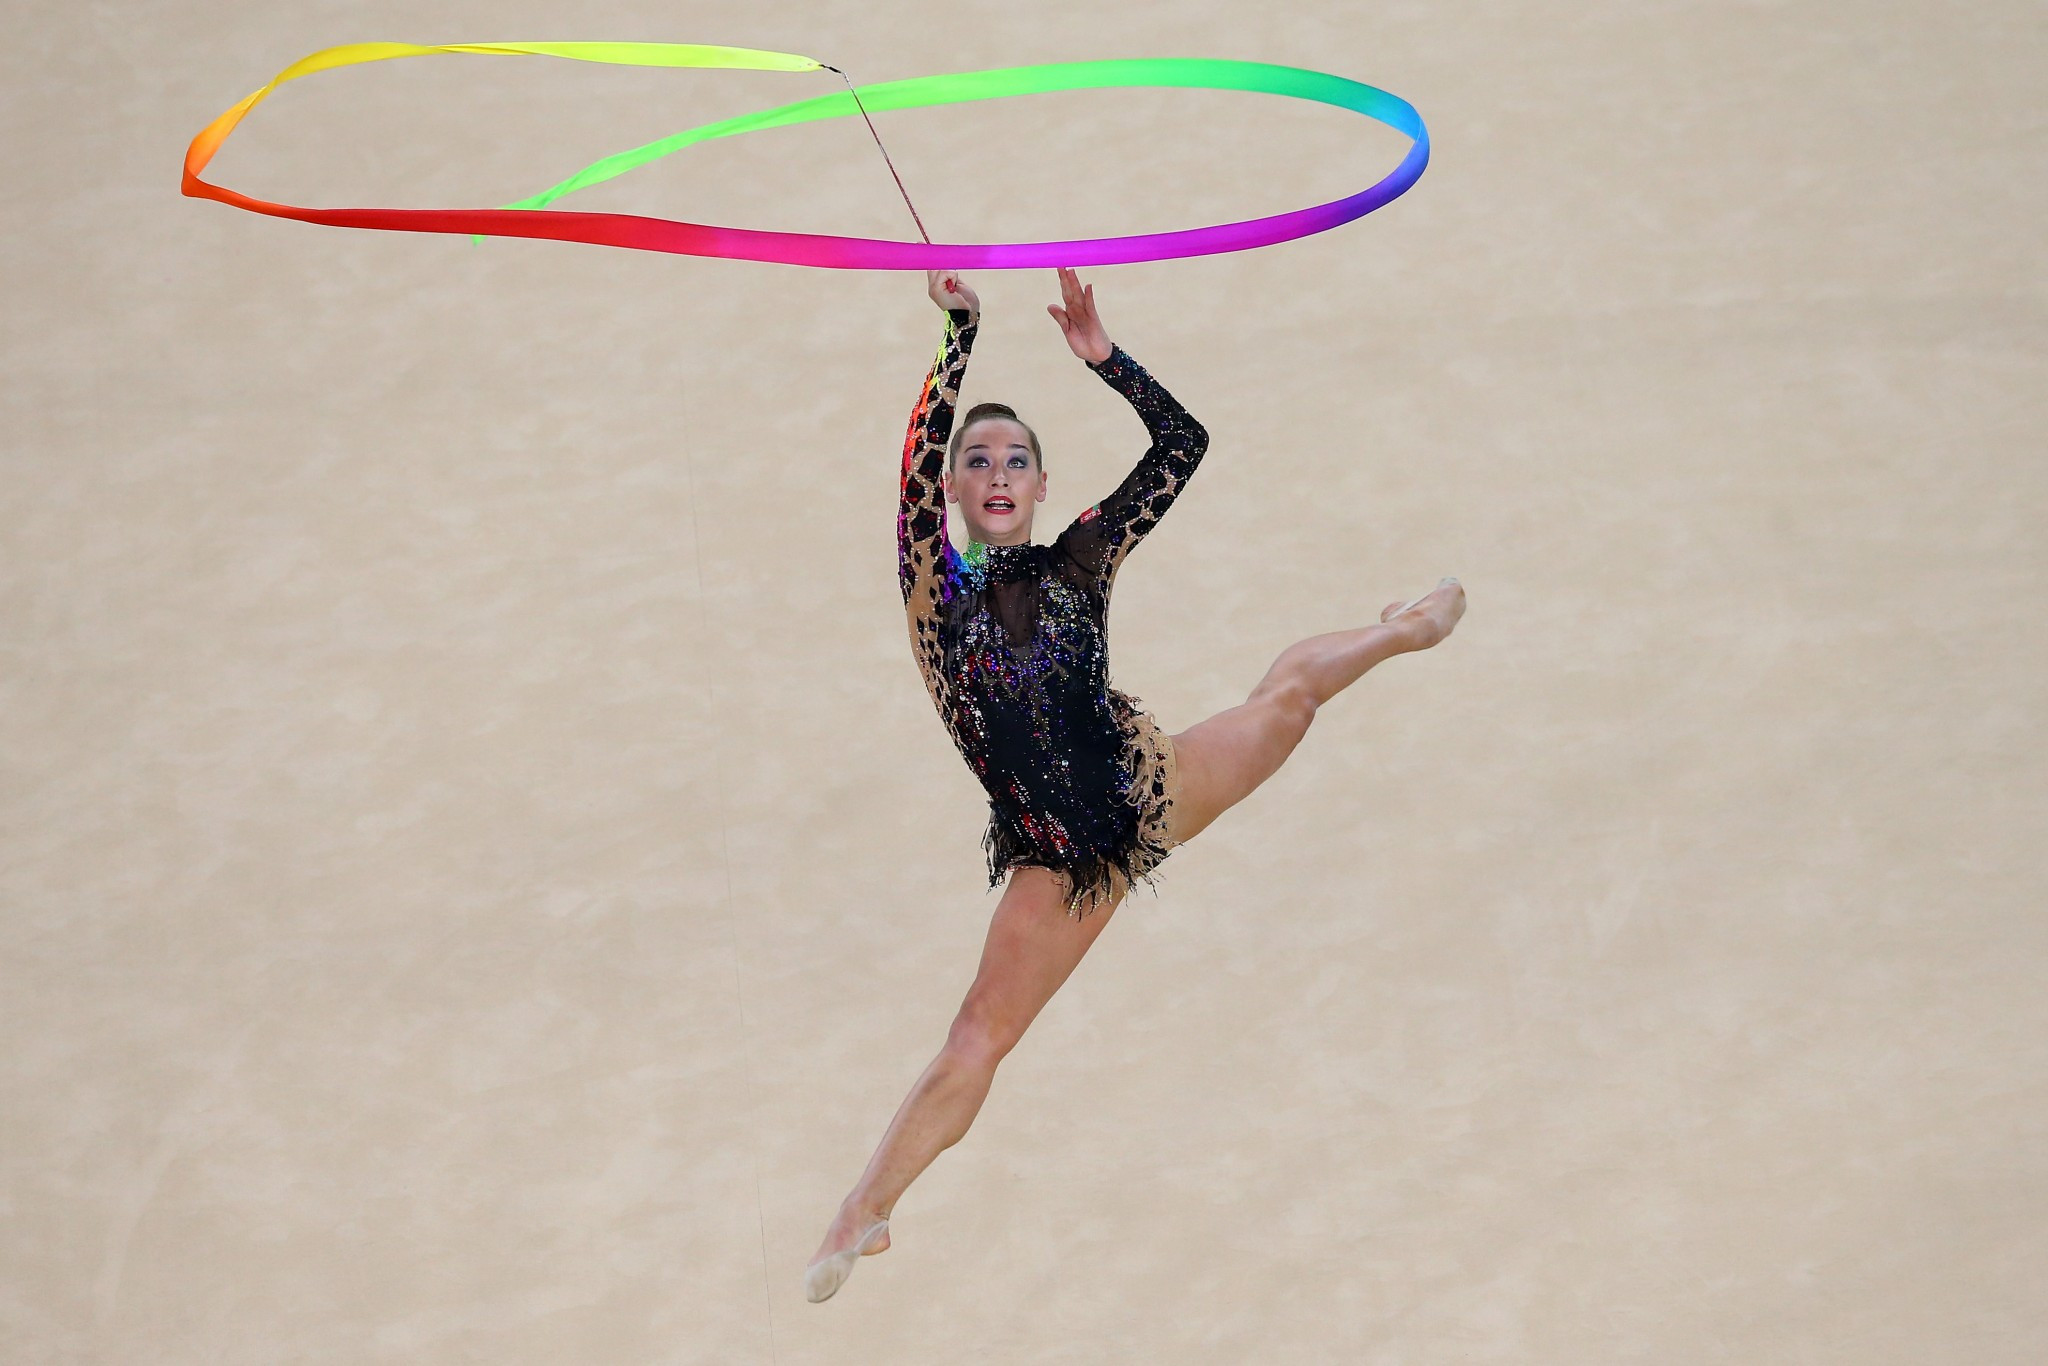 Rio 2016 Olympic finalist Katsiaryna Halkina will be part of the Belarus team at the Falcon Club ©Getty Images